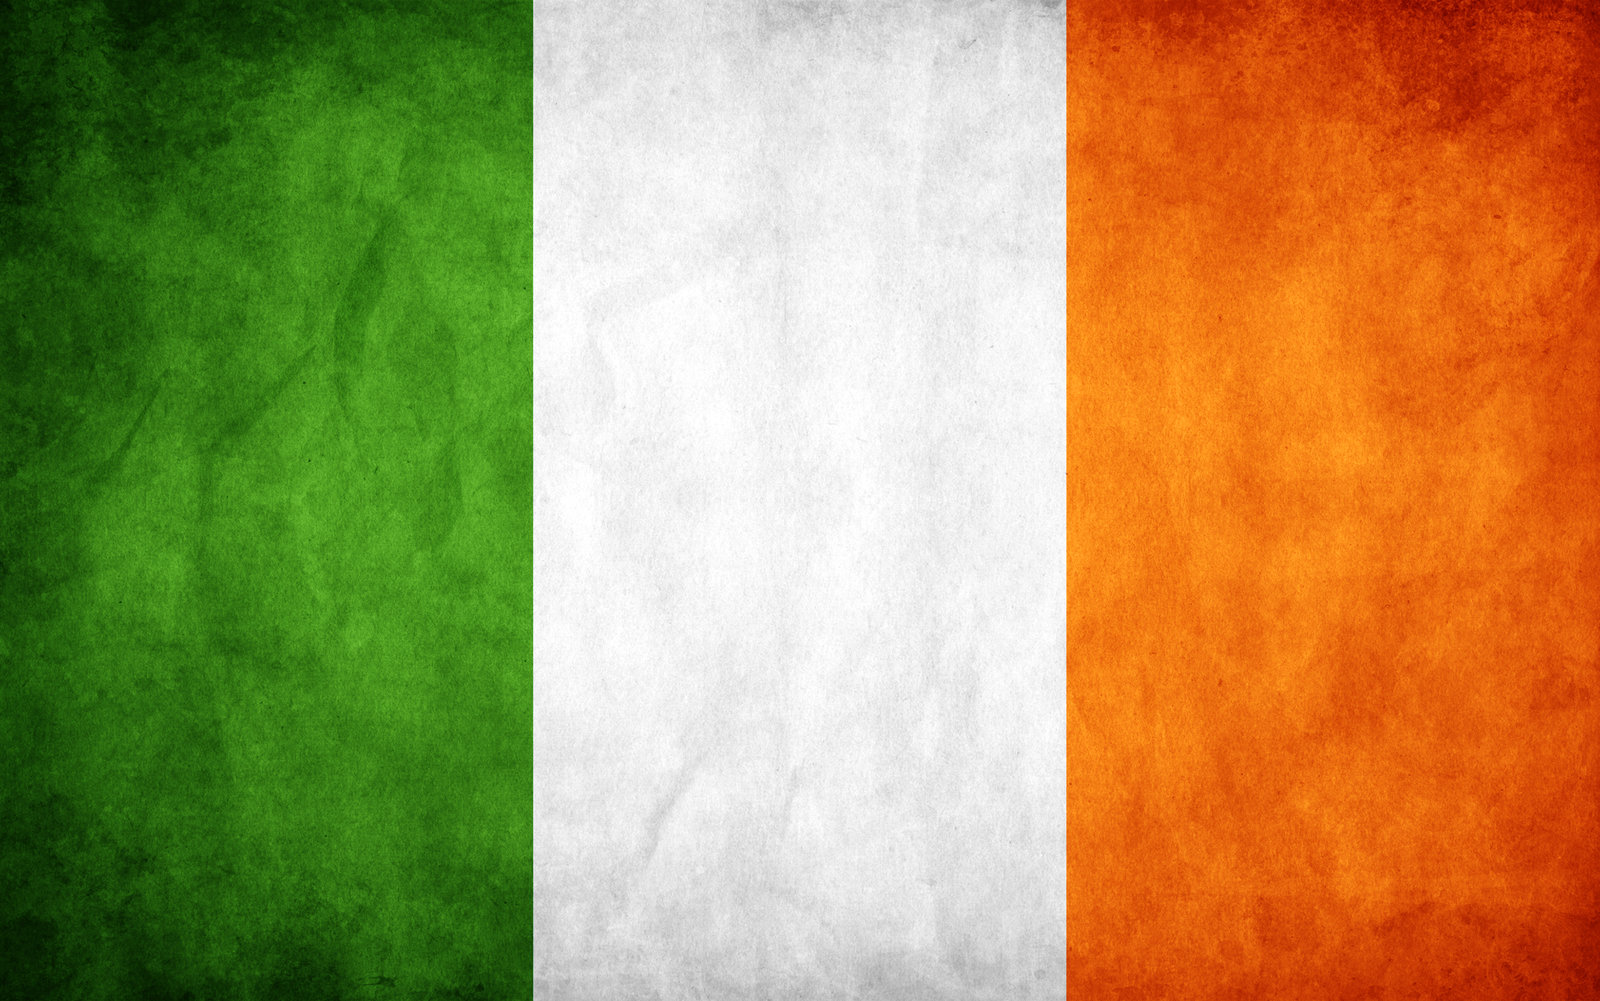 ireland_grunge_flag_by_think0